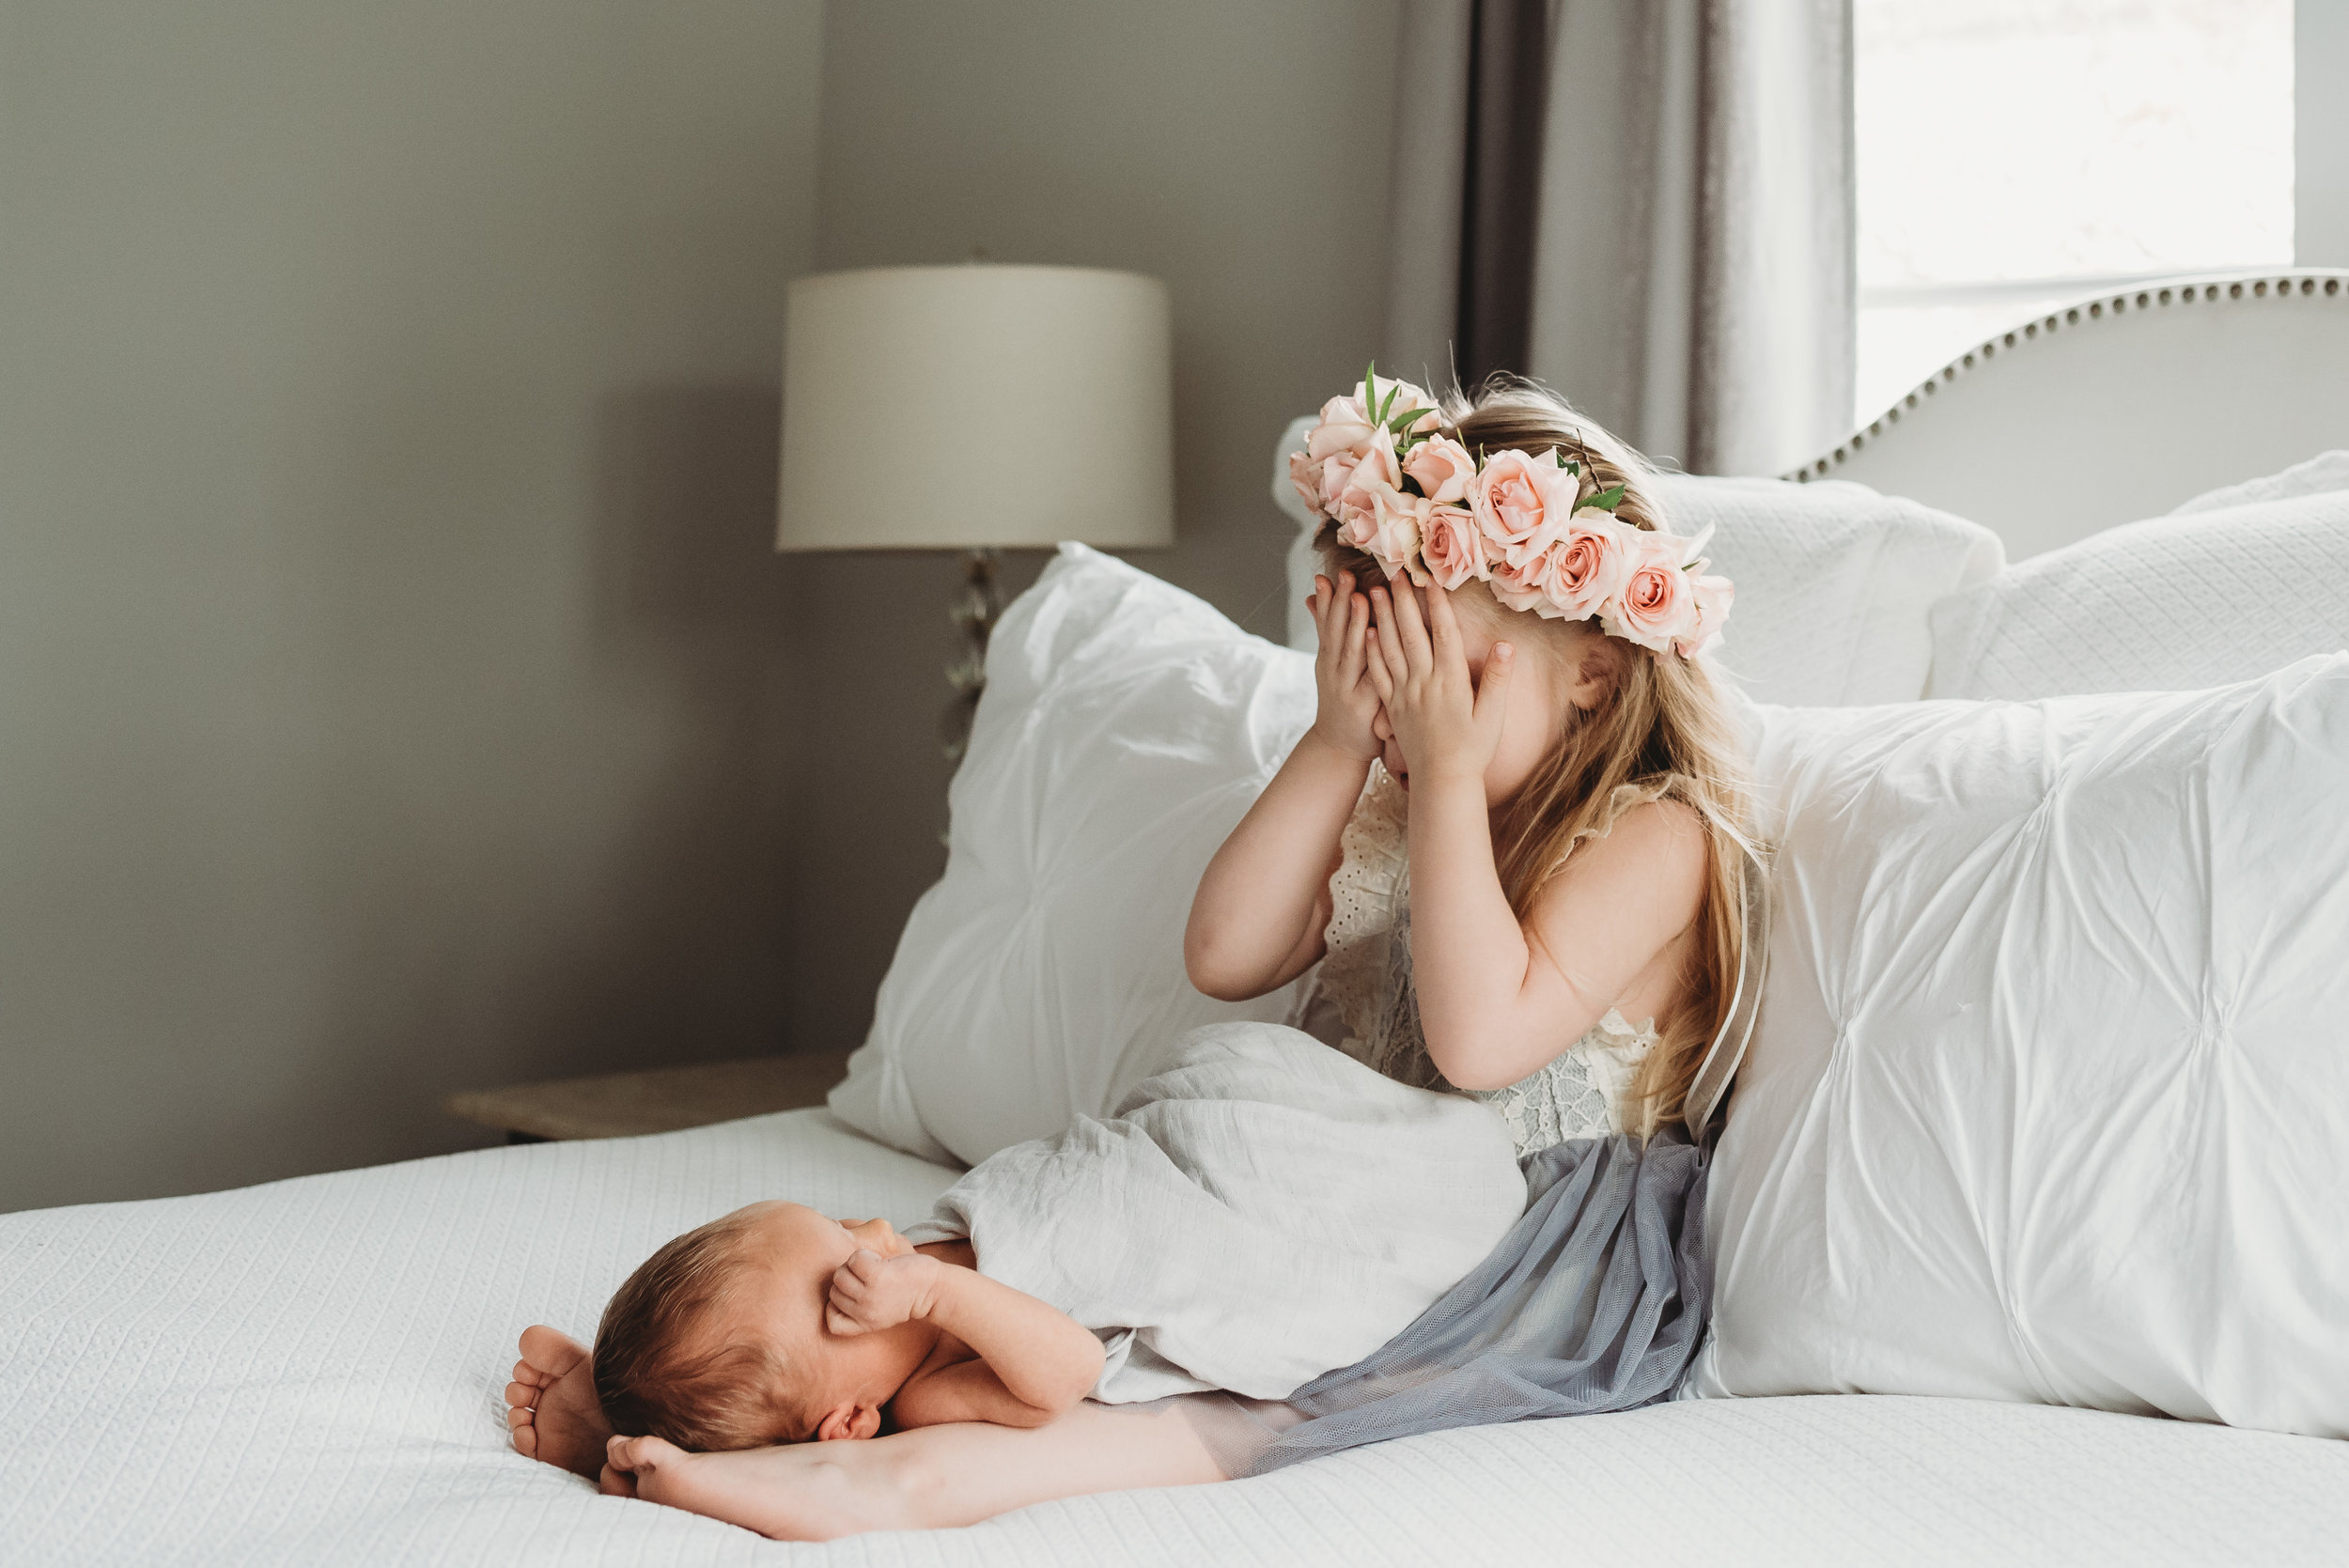 Natural Light Newborn Photographer Austin Texas-11.jpg